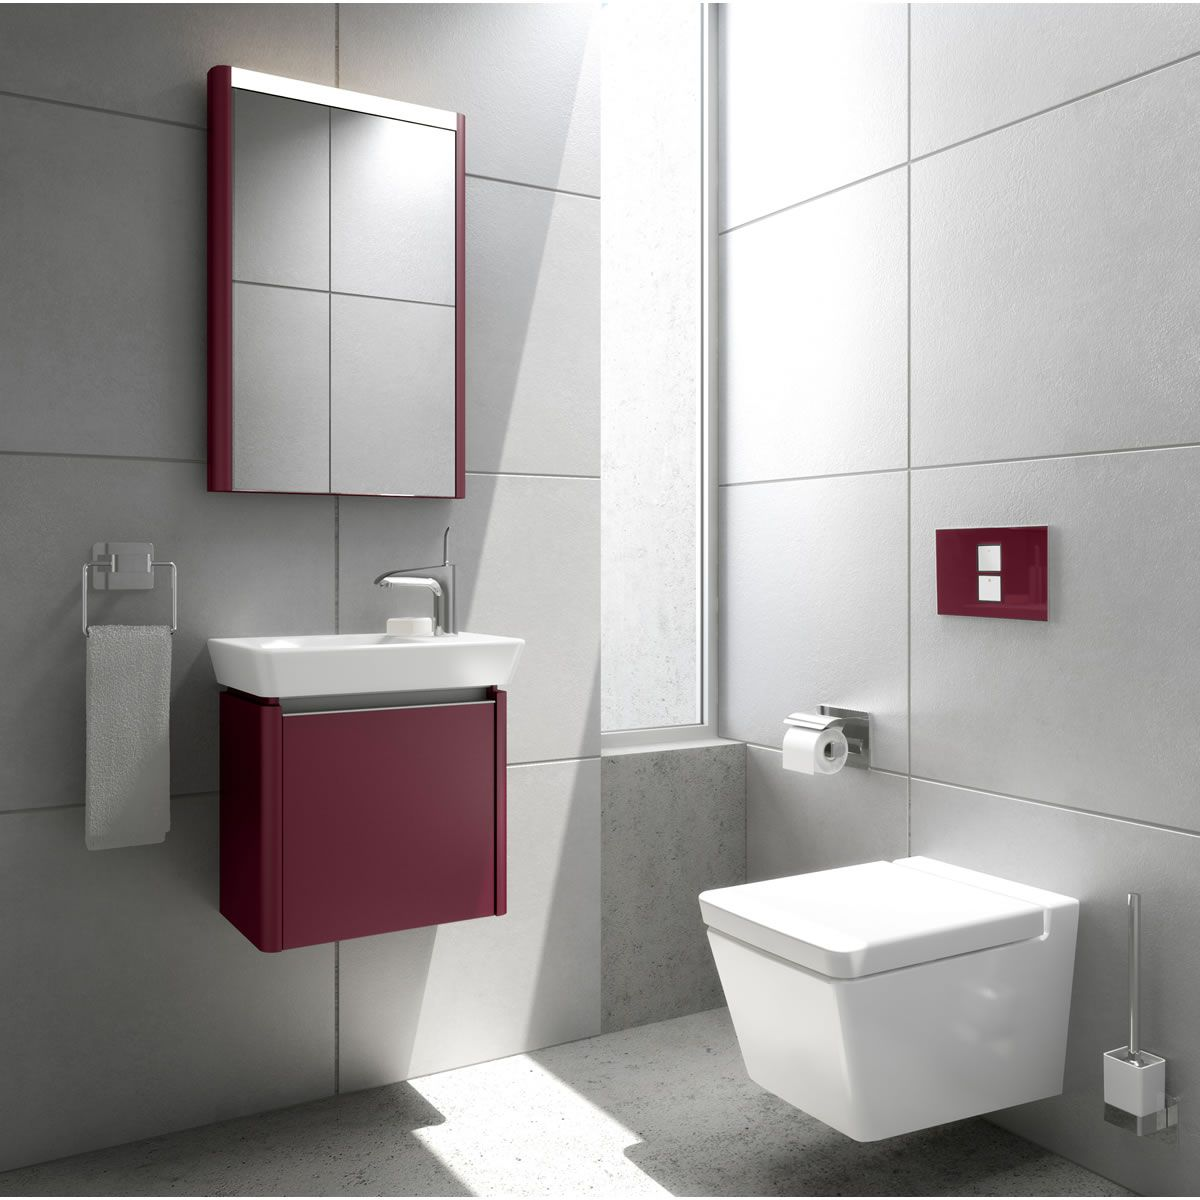 Toilets, Toilet Seats, Urinals & Macerators - UK Bathrooms : UK ...